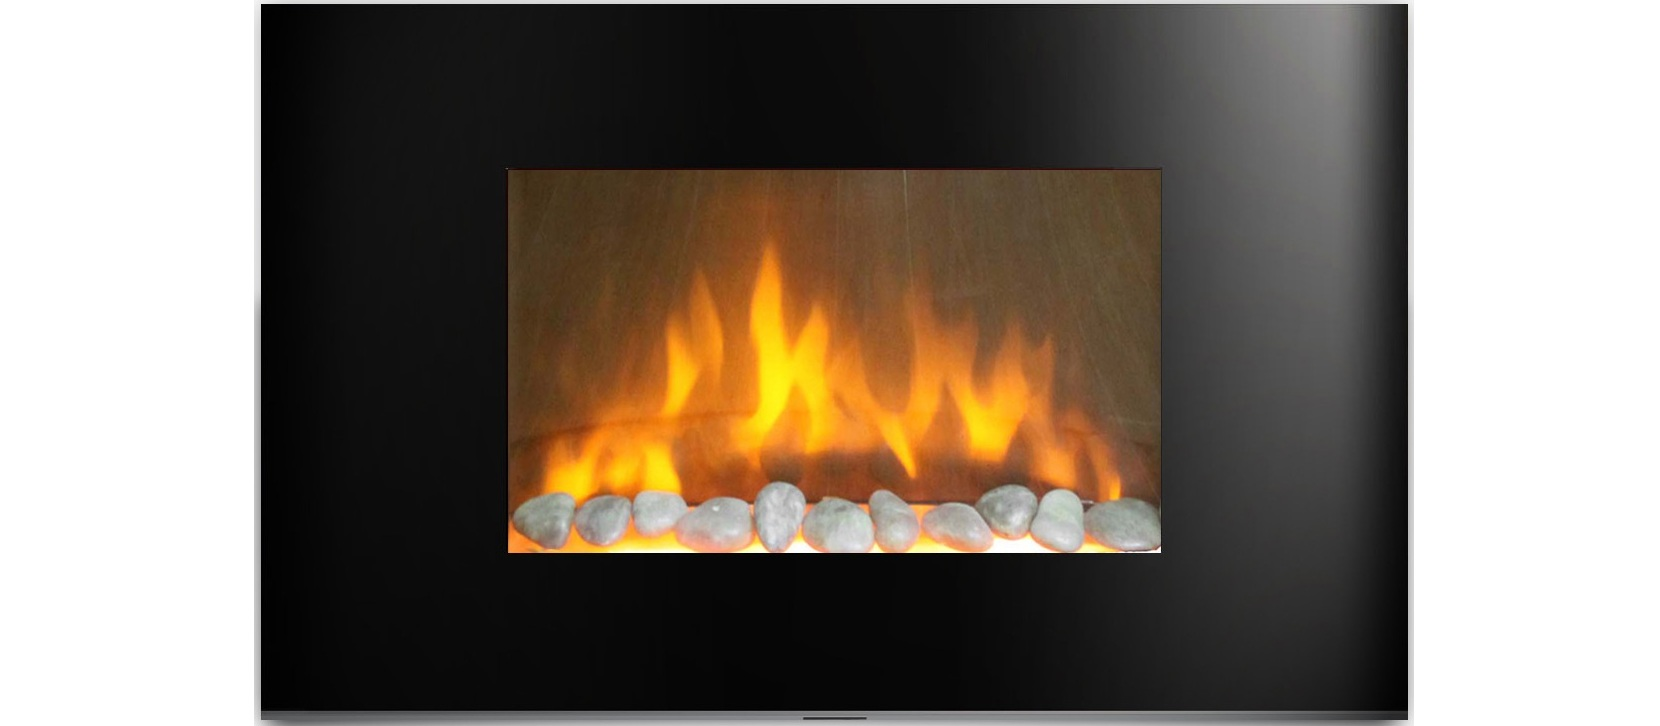 AmbionAir Flame 36 Electric Wall Mounted Fireplace EF 1510 BP